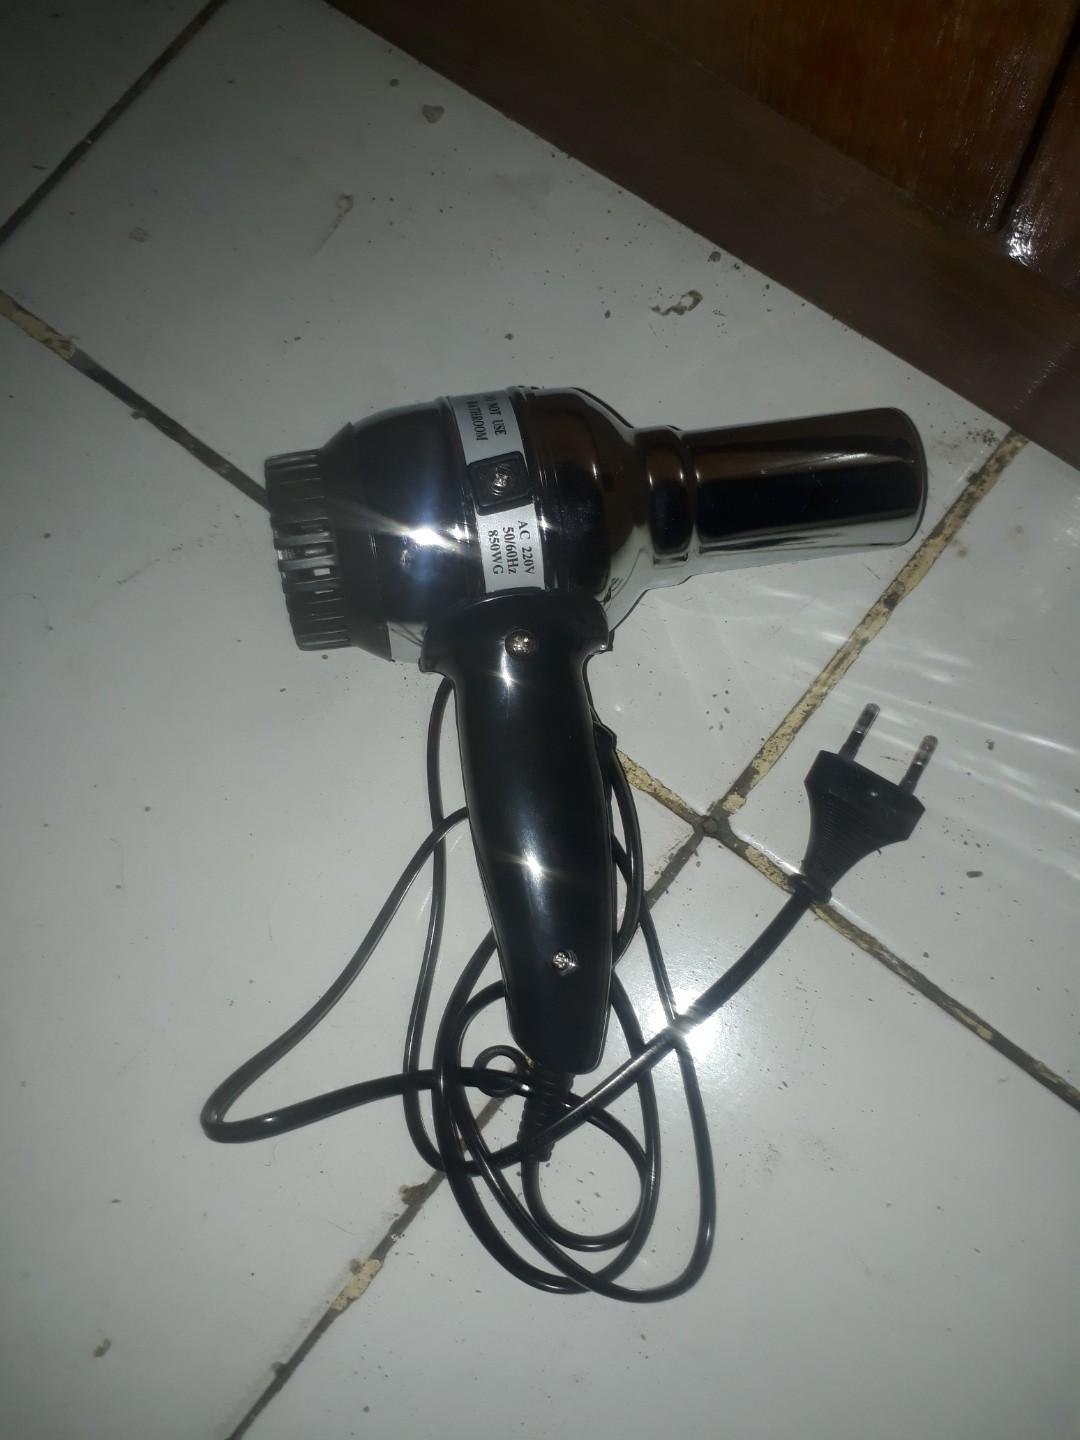 Hair dryer #BAPAU